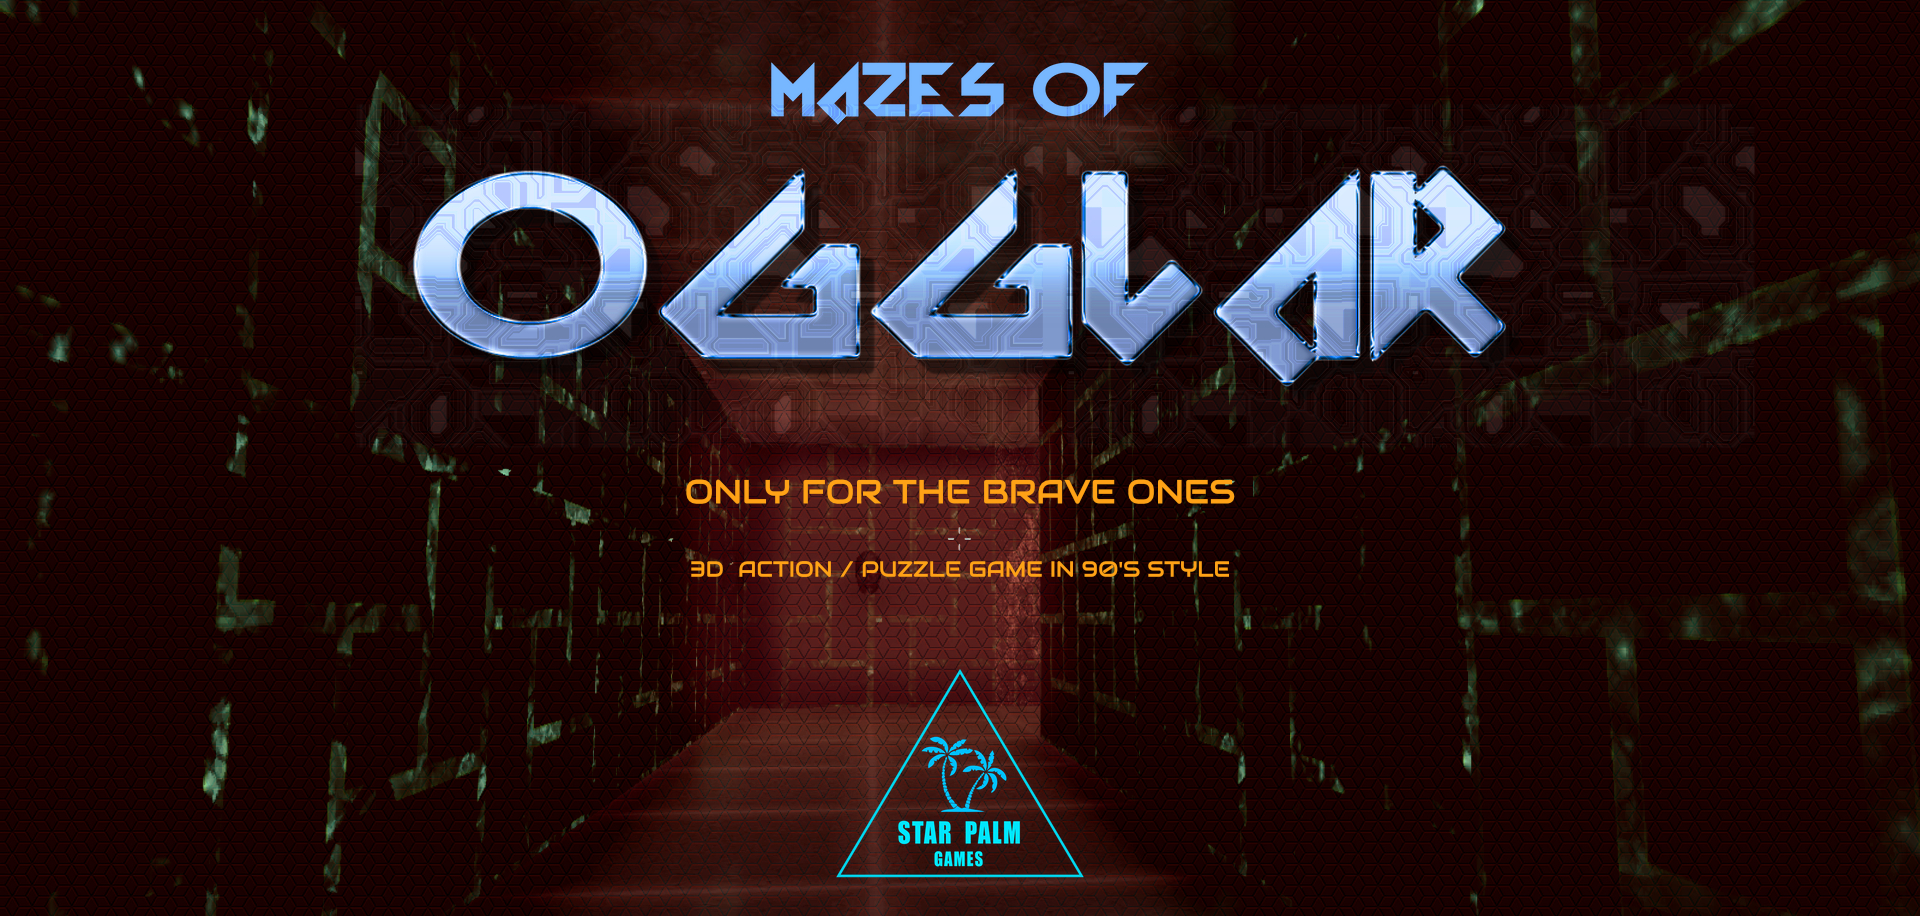 ONLY FOR THE BRAVE ONES! - MAZES OF OGGLAR by Star Palm Games